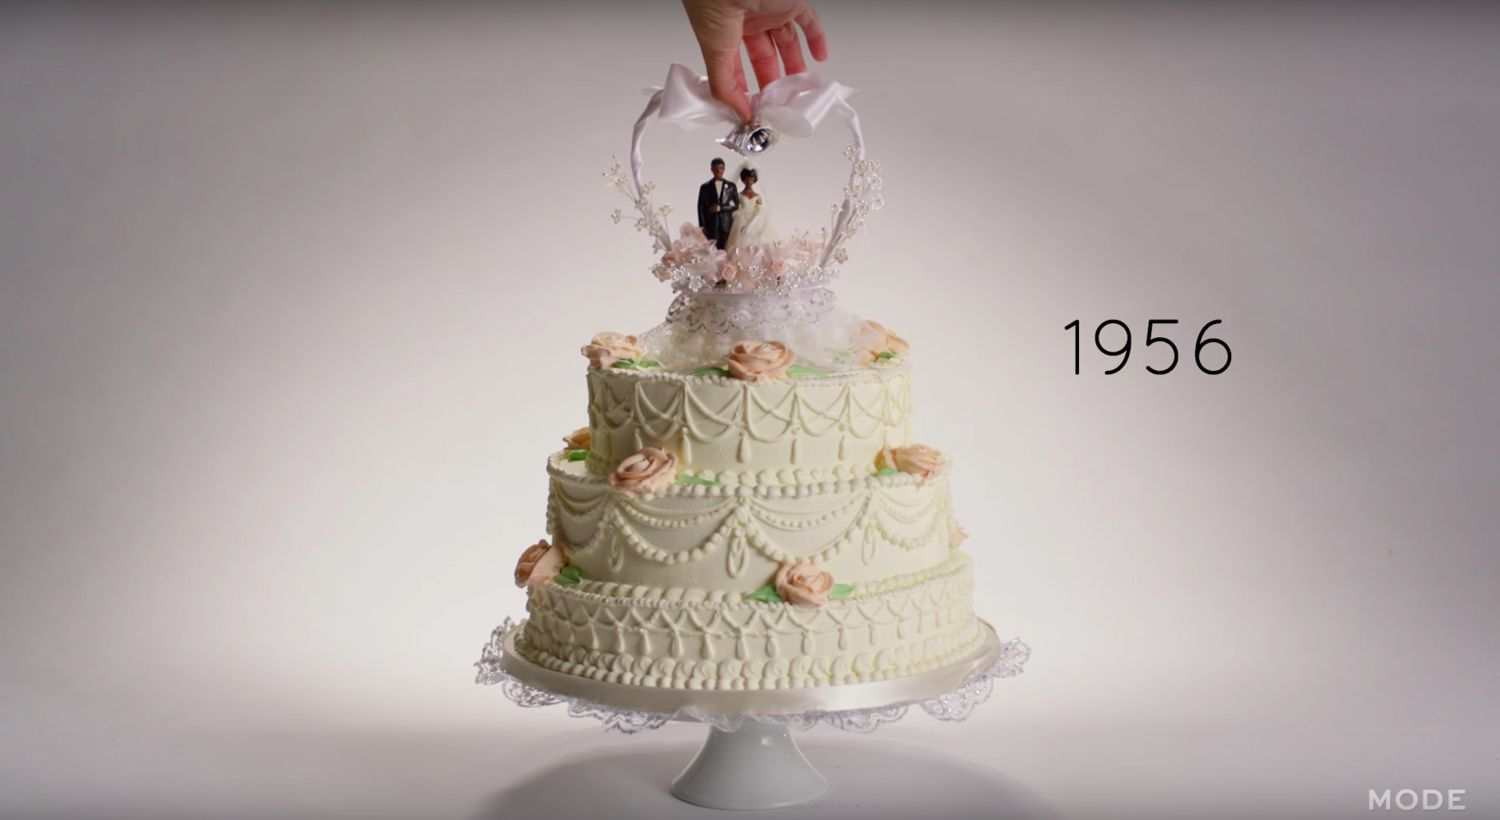 100 Years of Wedding Cakes - Wedding Cake Decorating Trends Over the ...